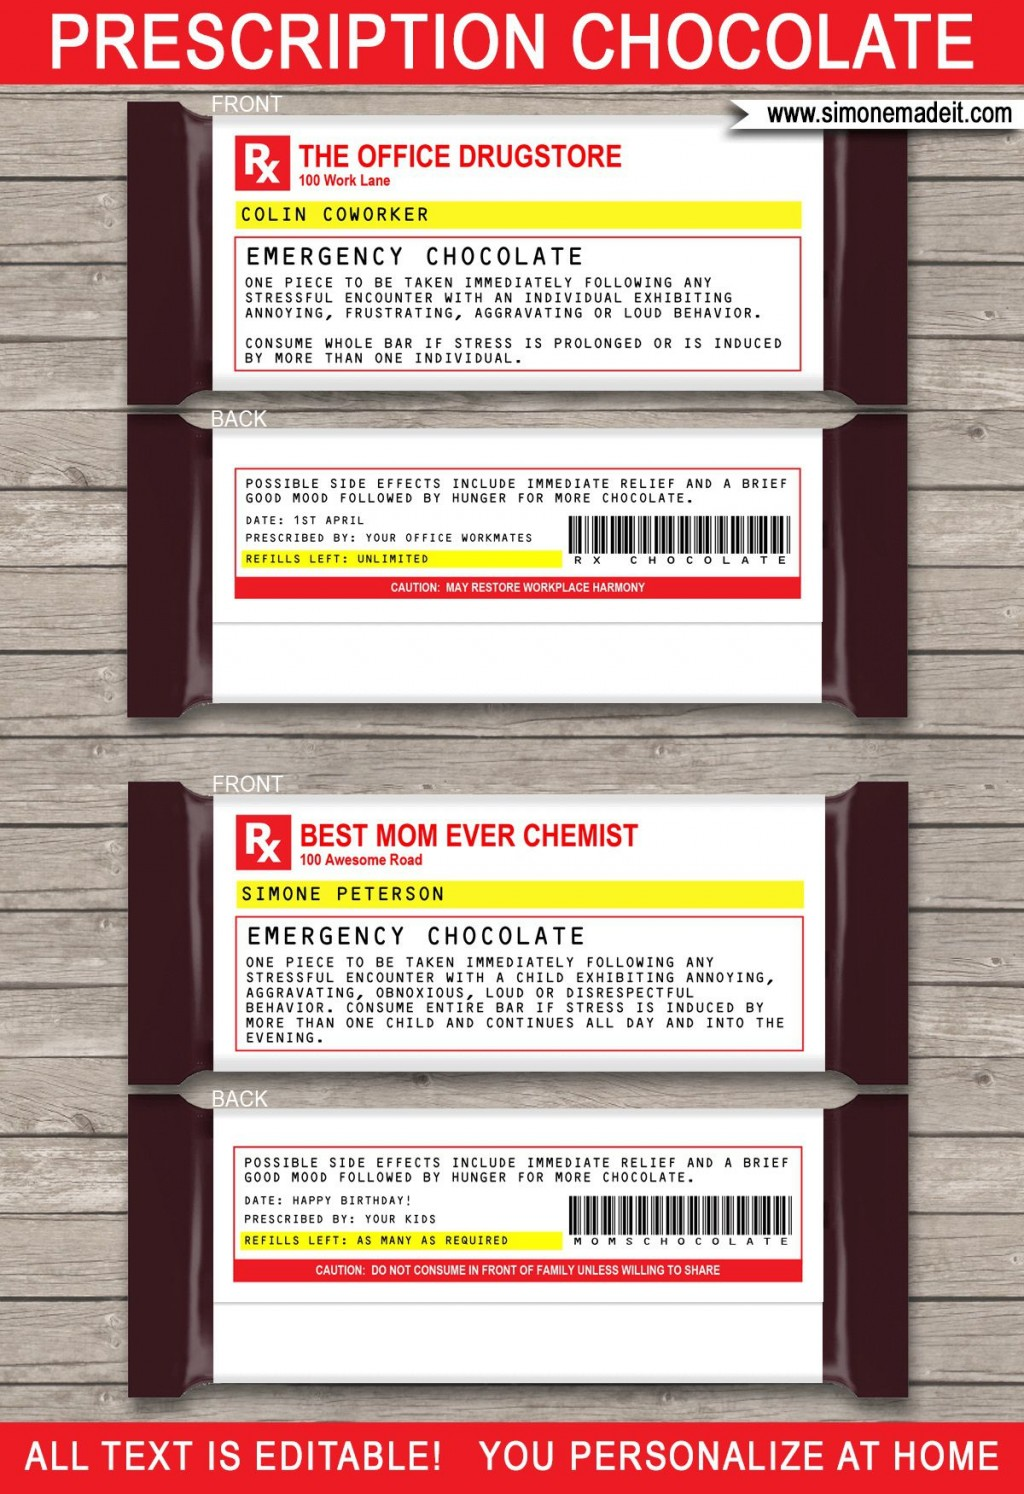 003 Beautiful Fake Prescription Label Template Example  Free BottleLarge